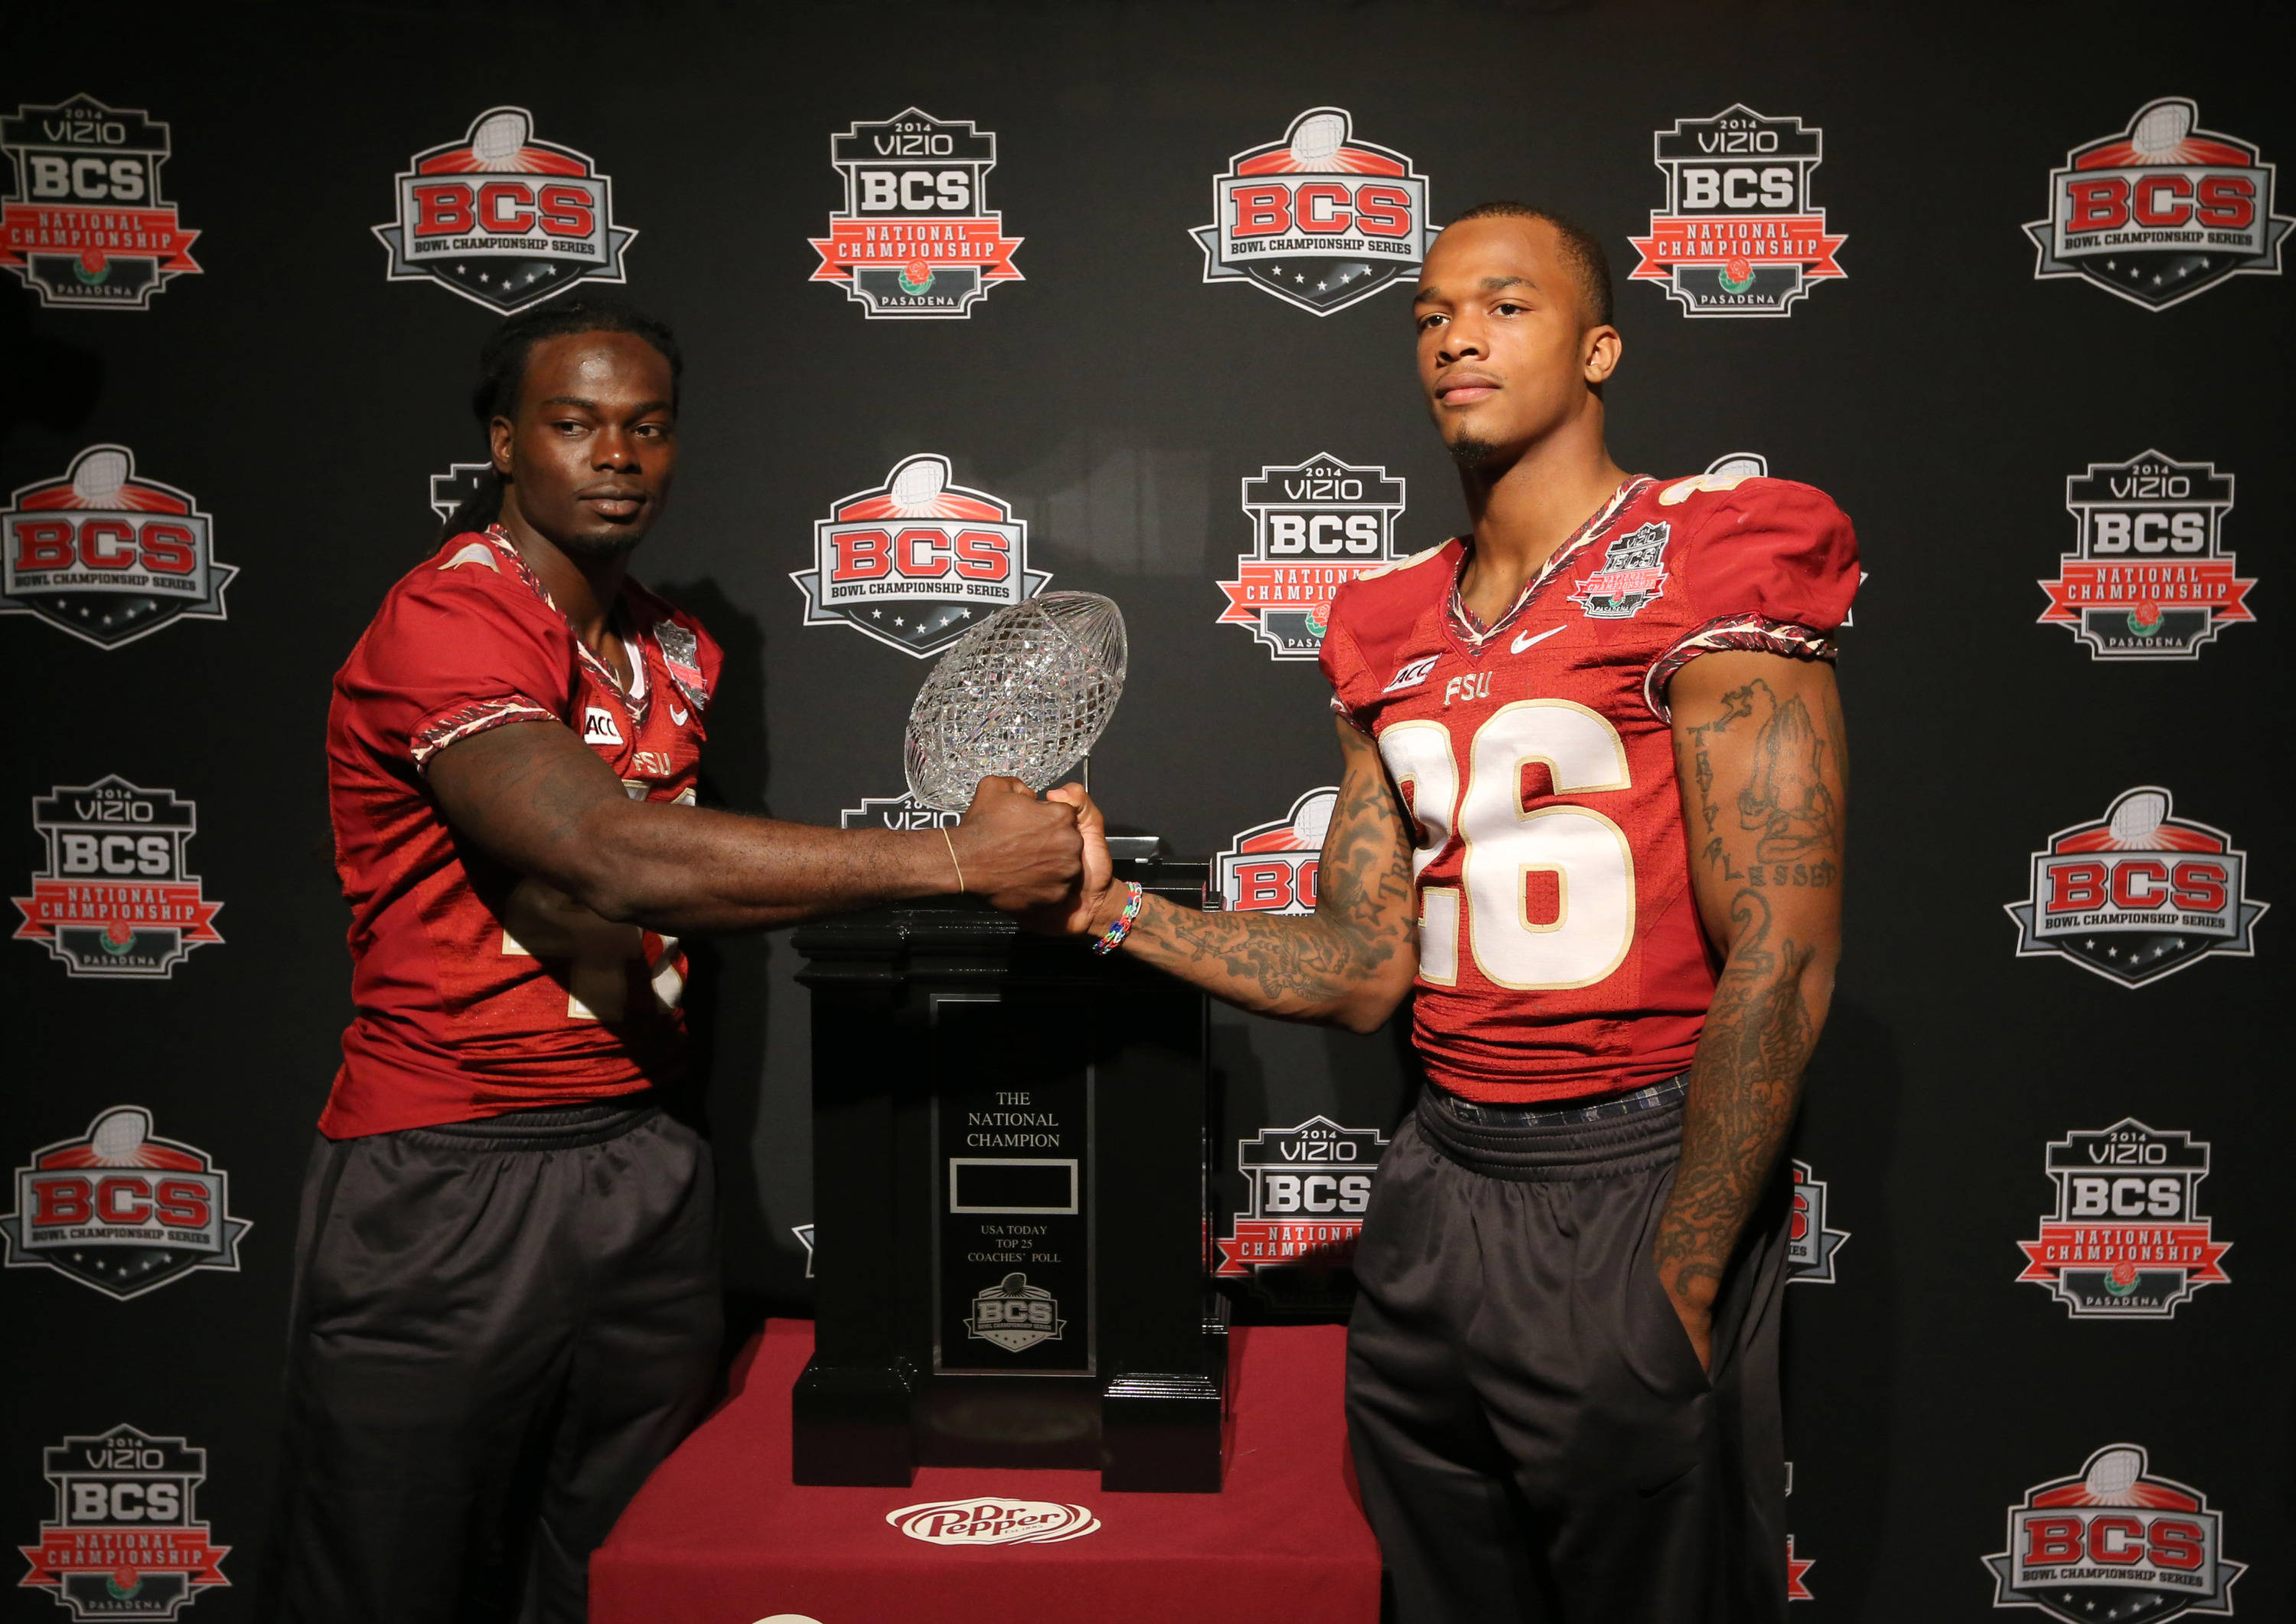 Jan 4, 2014; Newport Beach, CA, USA; Seminoles cornerback Donovan Todd (41) and P.J. Williams (26) poses for a photo with the Coaches' Trophy during Media Day at Newport Beach Marriott. Matthew Emmons-USA TODAY Sports